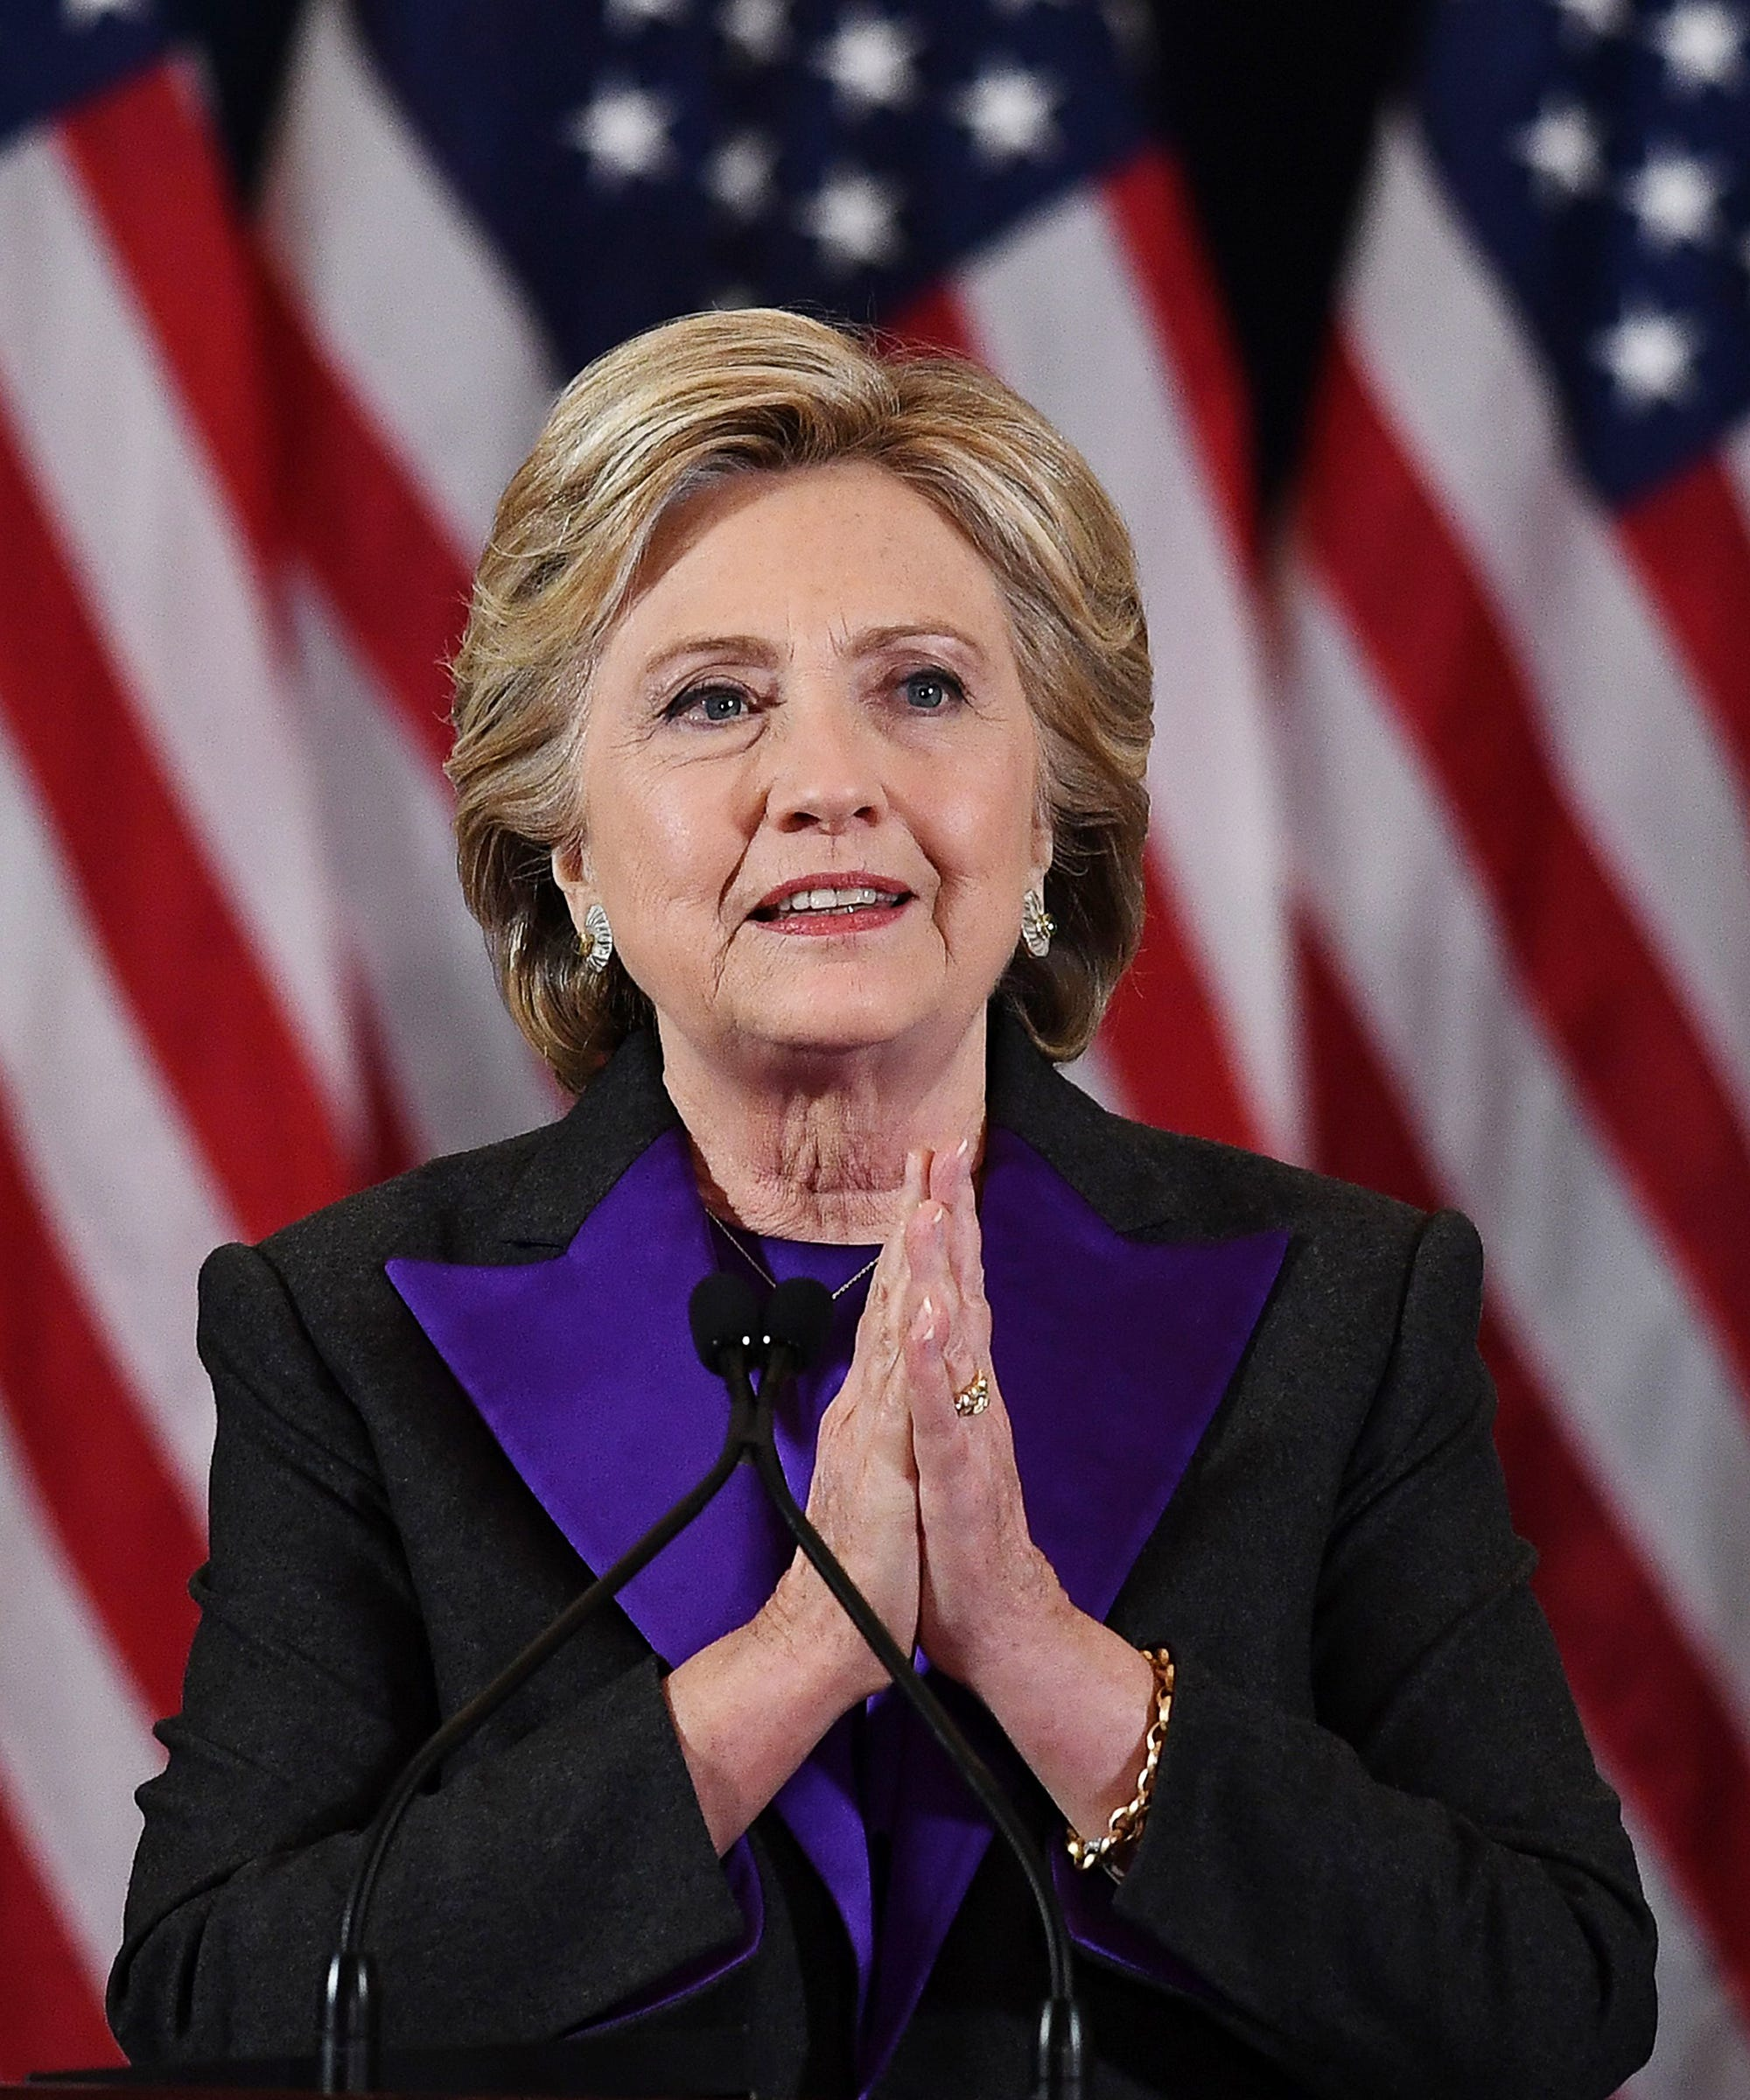 Hillary Clinton's Loss Was A Good Thing For Women — Here's Why